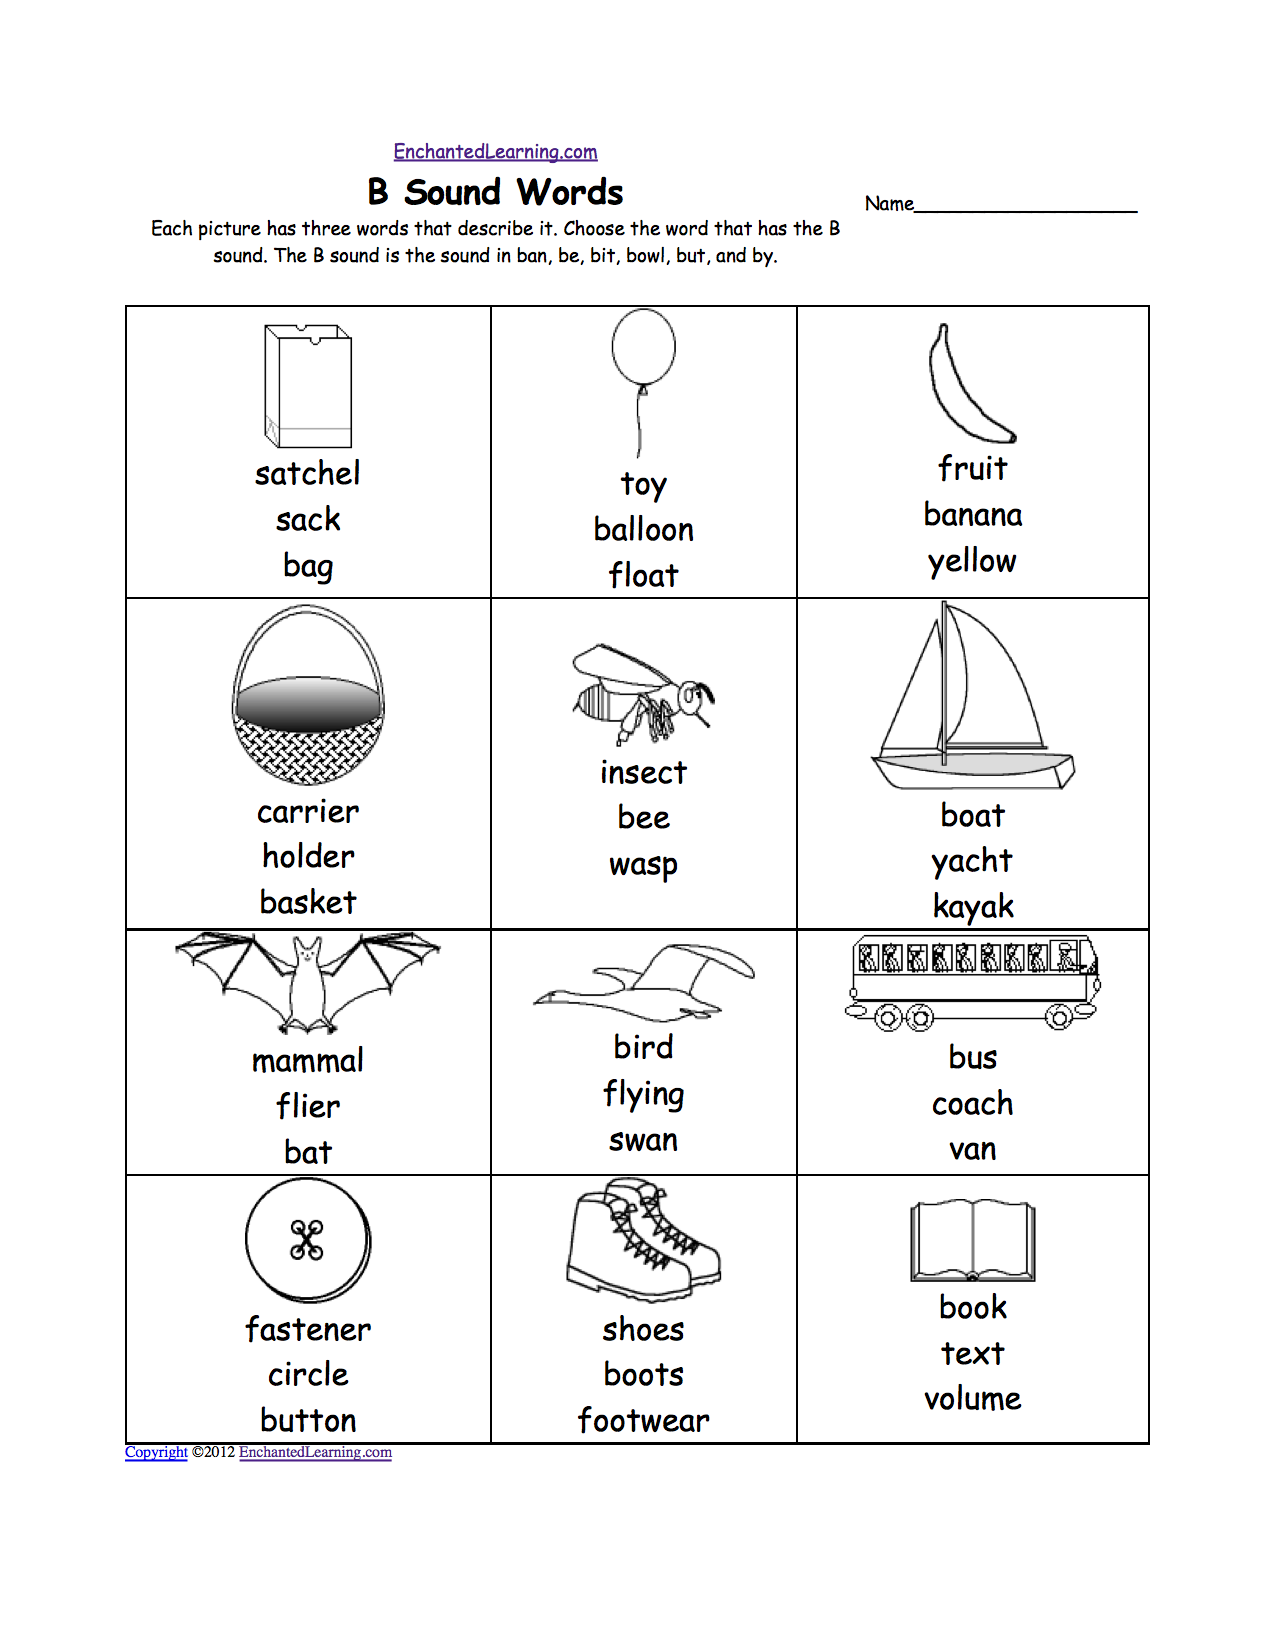 Weirdmailus  Unusual Phonics Worksheets Multiple Choice Worksheets To Print  With Entrancing Quotbquot Sound Phonics Worksheet Multiple Choice Each Picture Has Three Words That Describe It Choose The Word That Has A Quotbquot Sound The Quotbquot Sound Is The Sound  With Extraordinary Th Of July Worksheets Also Factoring Out The Gcf Worksheet In Addition The Six Trigonometric Functions Worksheet Answers And Protein Synthesis Worksheet Lesson Plans Inc  As Well As Brain Teasers Worksheet Additionally Summarizing Worksheets Th Grade From Enchantedlearningcom With Weirdmailus  Entrancing Phonics Worksheets Multiple Choice Worksheets To Print  With Extraordinary Quotbquot Sound Phonics Worksheet Multiple Choice Each Picture Has Three Words That Describe It Choose The Word That Has A Quotbquot Sound The Quotbquot Sound Is The Sound  And Unusual Th Of July Worksheets Also Factoring Out The Gcf Worksheet In Addition The Six Trigonometric Functions Worksheet Answers From Enchantedlearningcom